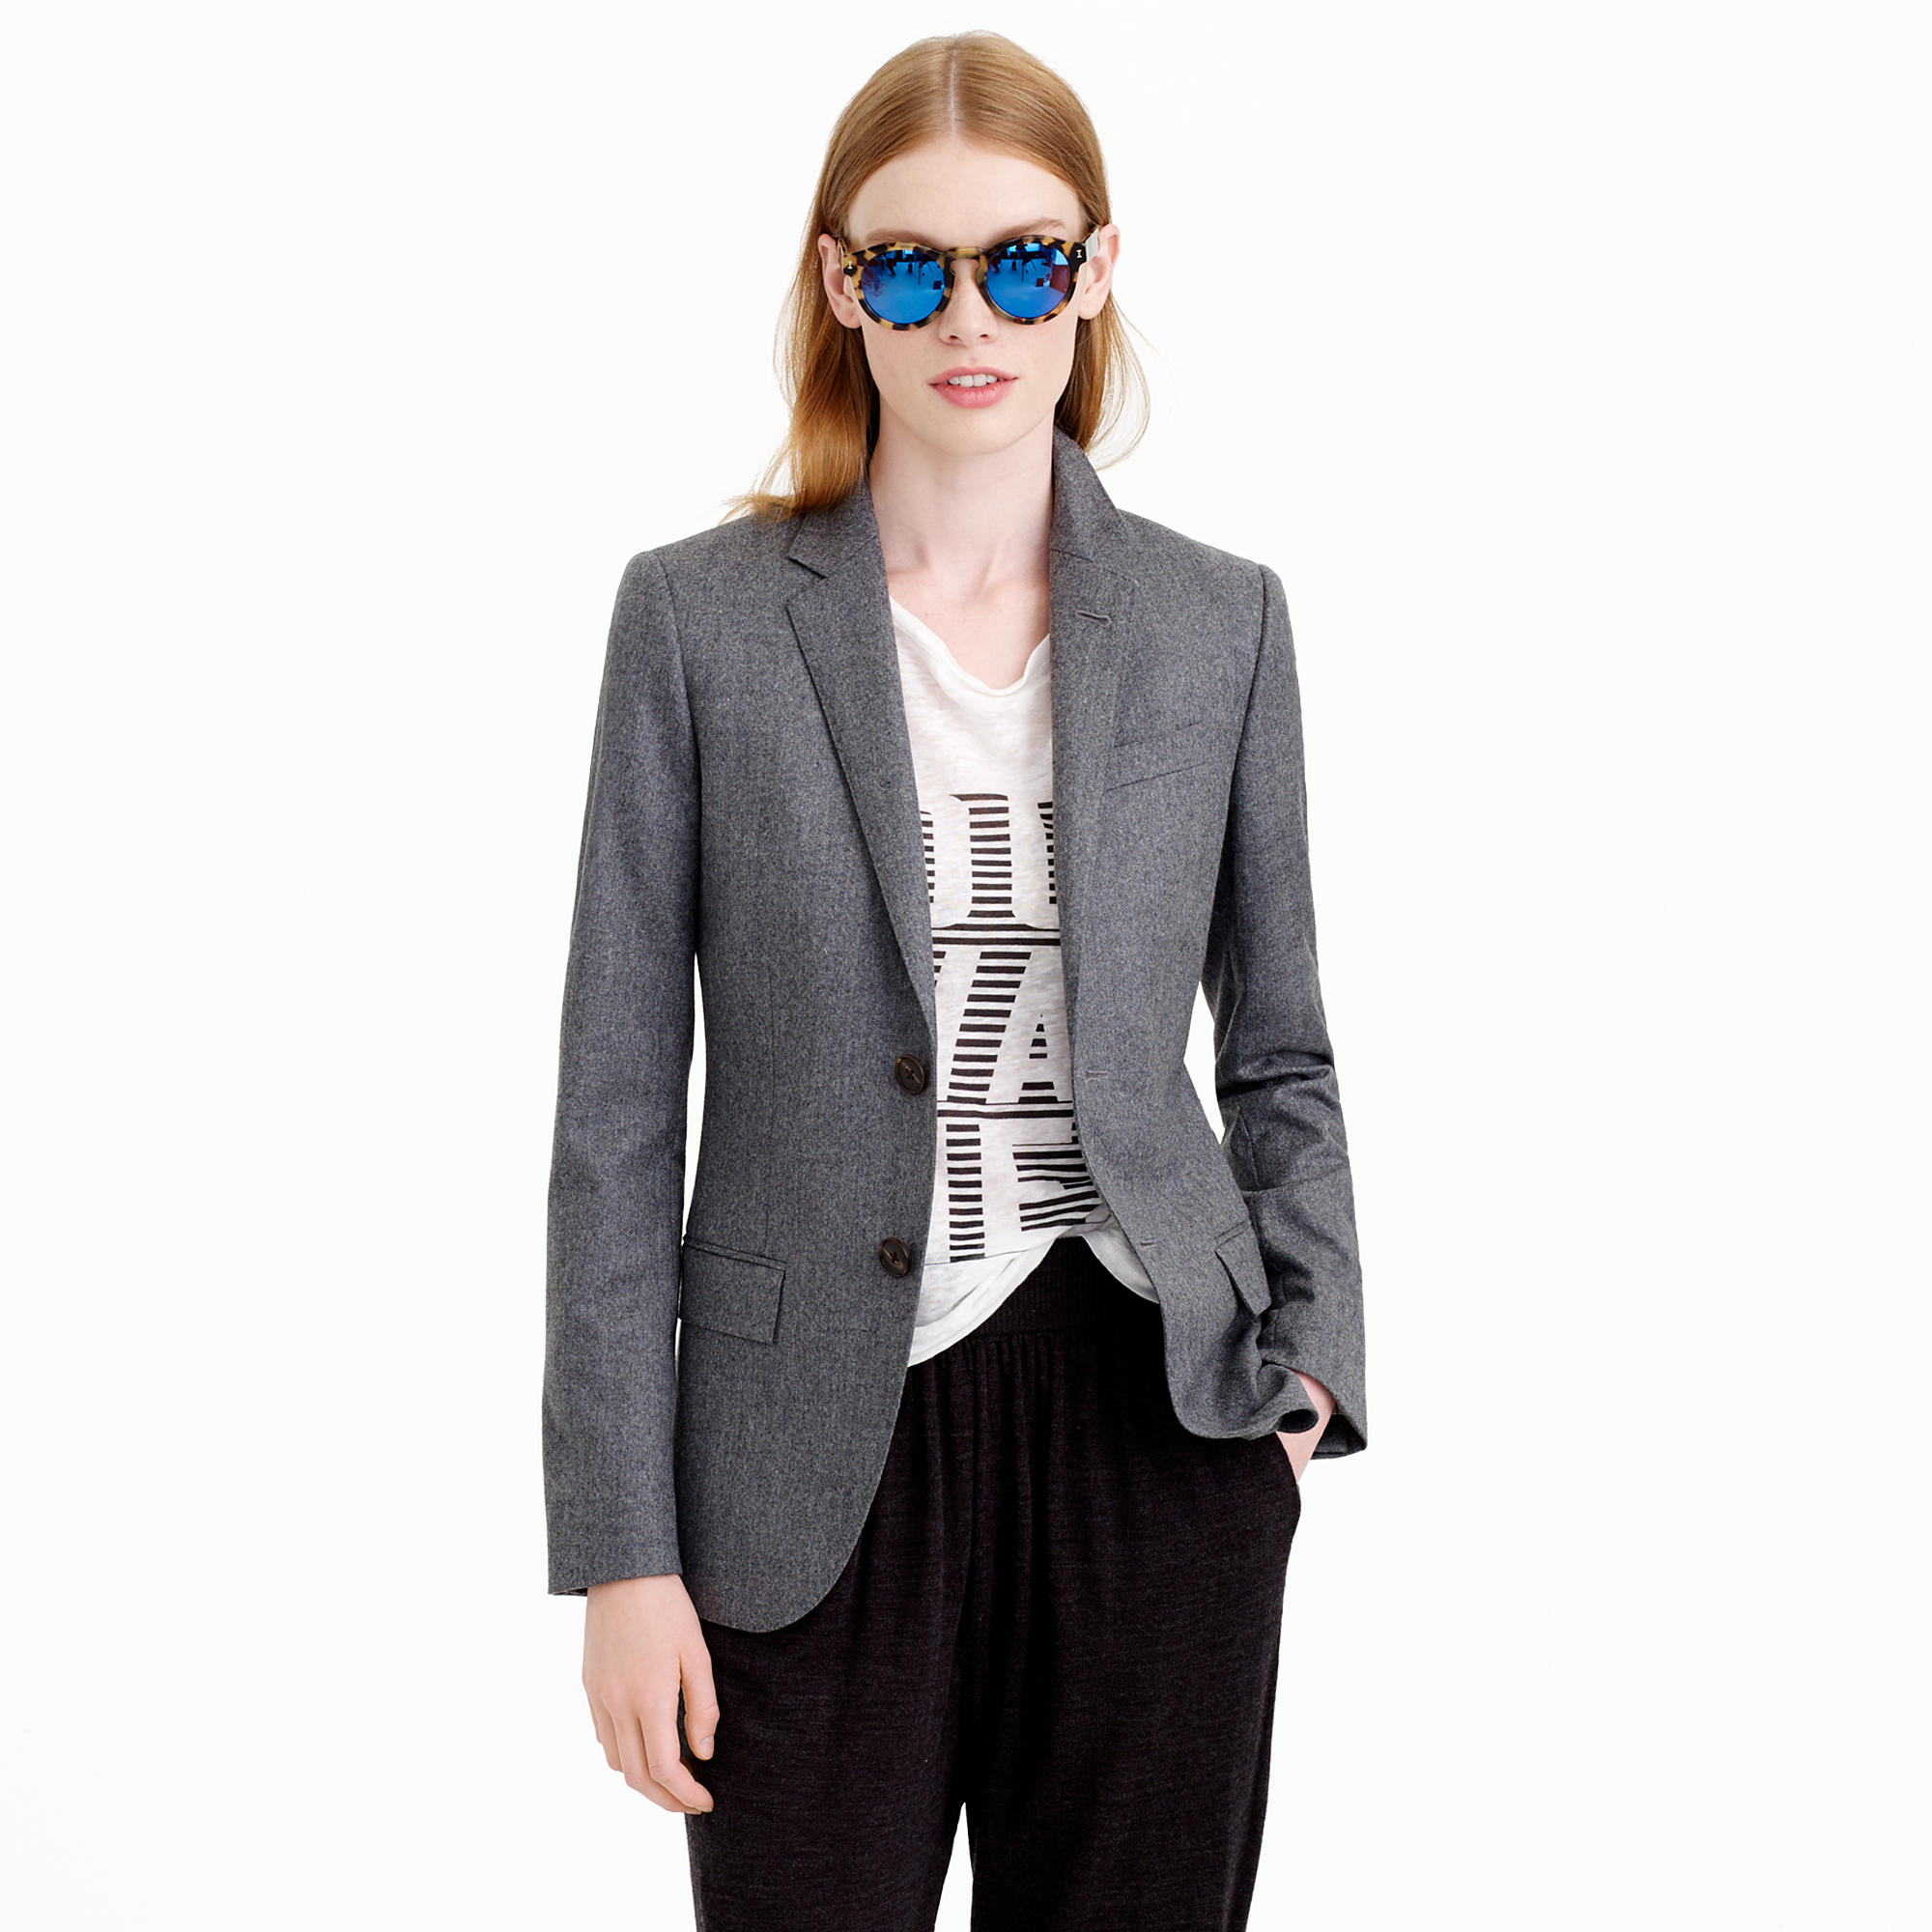 Wool Blazer Stay warm and on-trend in the polished look of a wool blazer. Whether you're in search of men's or women's jackets, discover the perfect piece to build on your professional rotation.